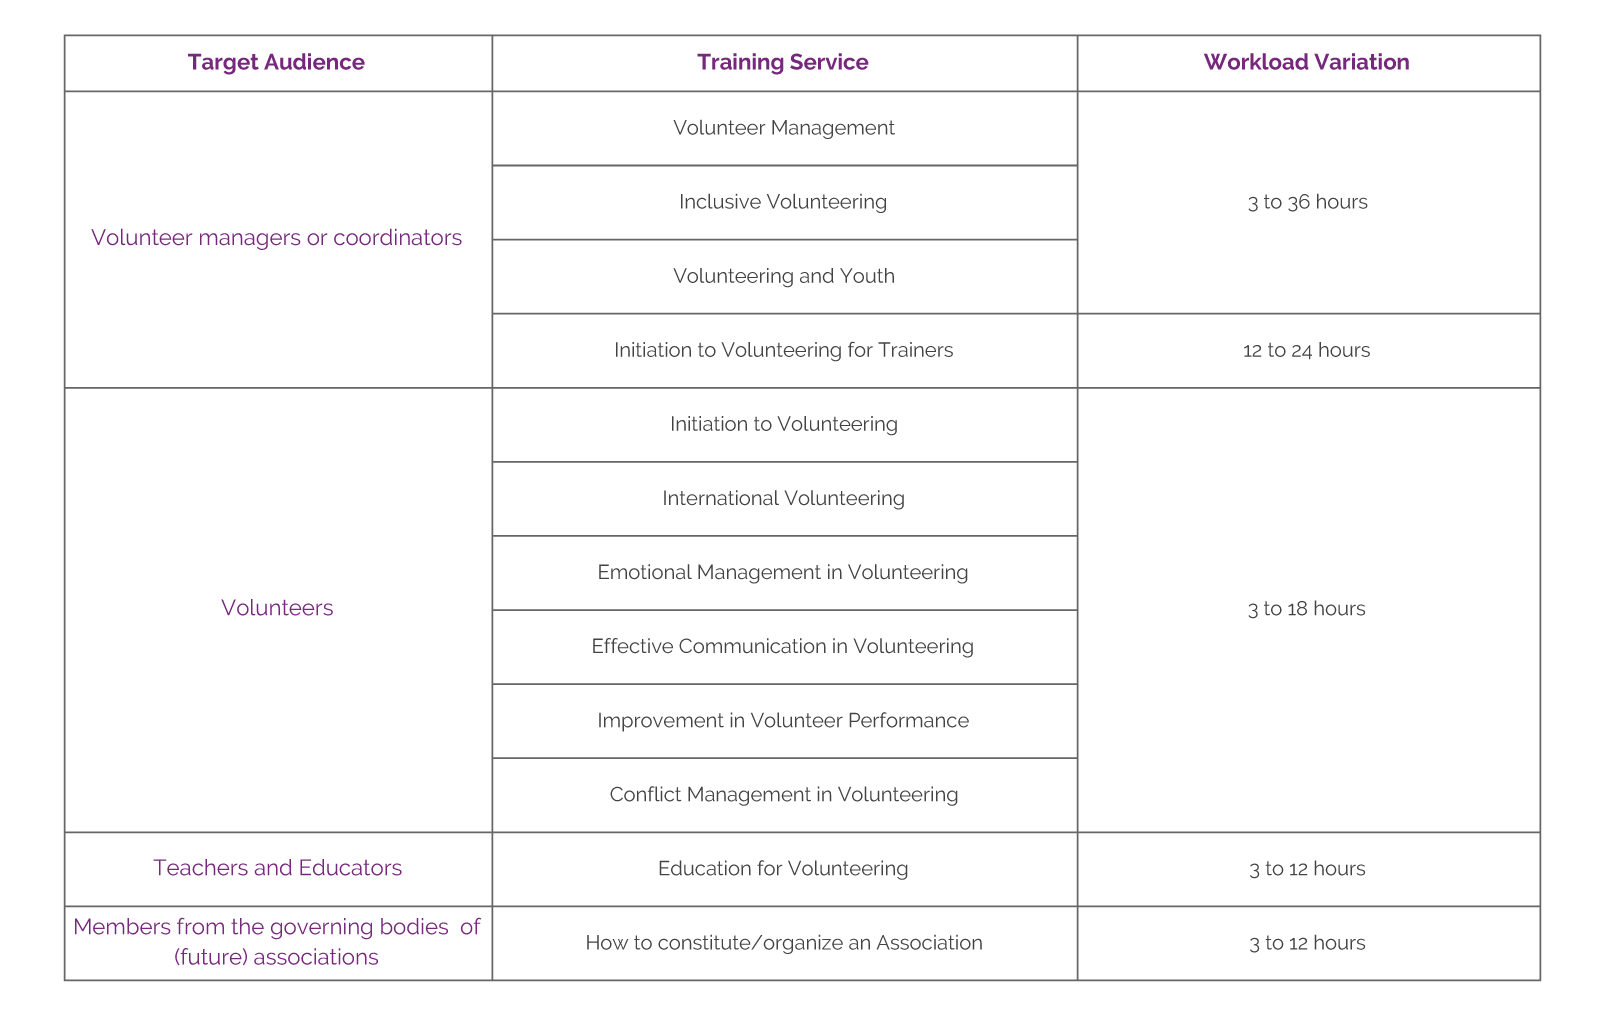 Table of Training Services | Pista Mágica